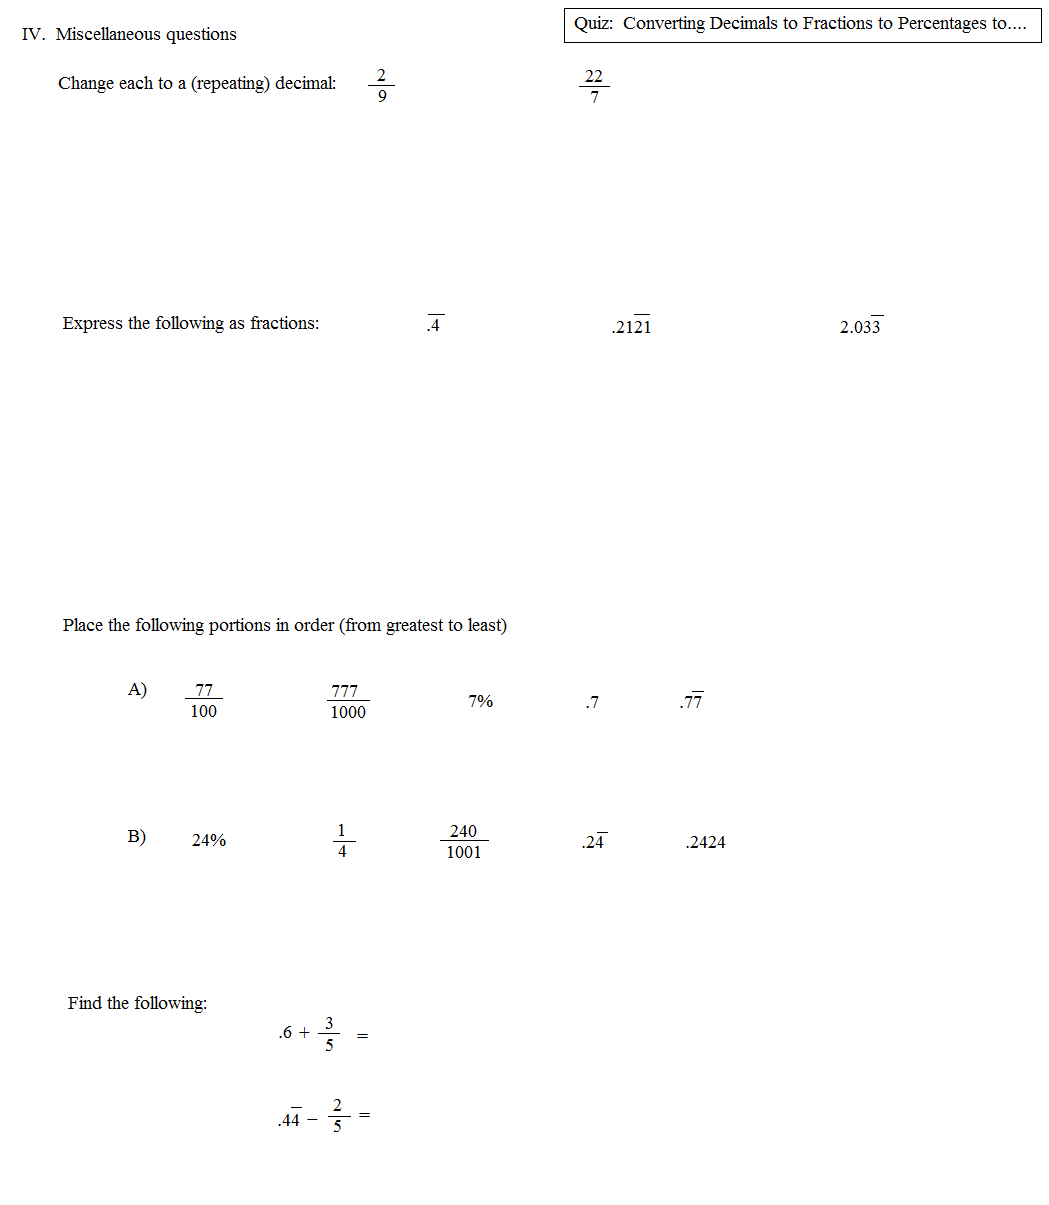 Math Plane Converting Fractions to Decimals to Percentages – Converting Decimals to Fractions Worksheets Pdf